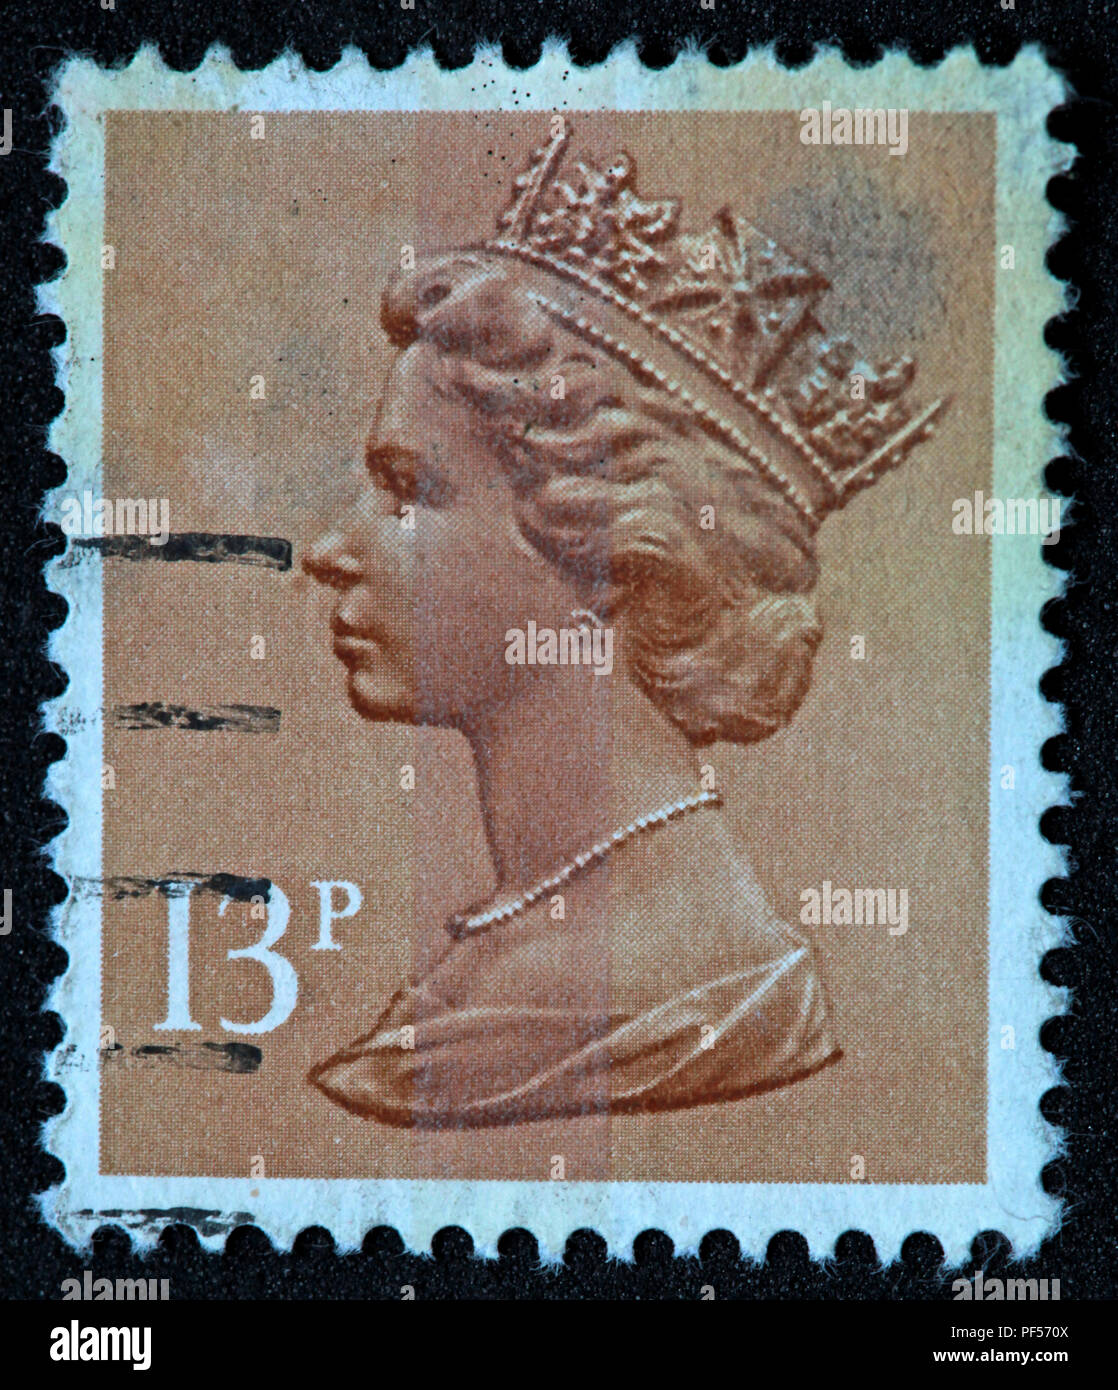 Used franked brown British UK stamp - 13p - Queen Elizabeth II - Stock Image